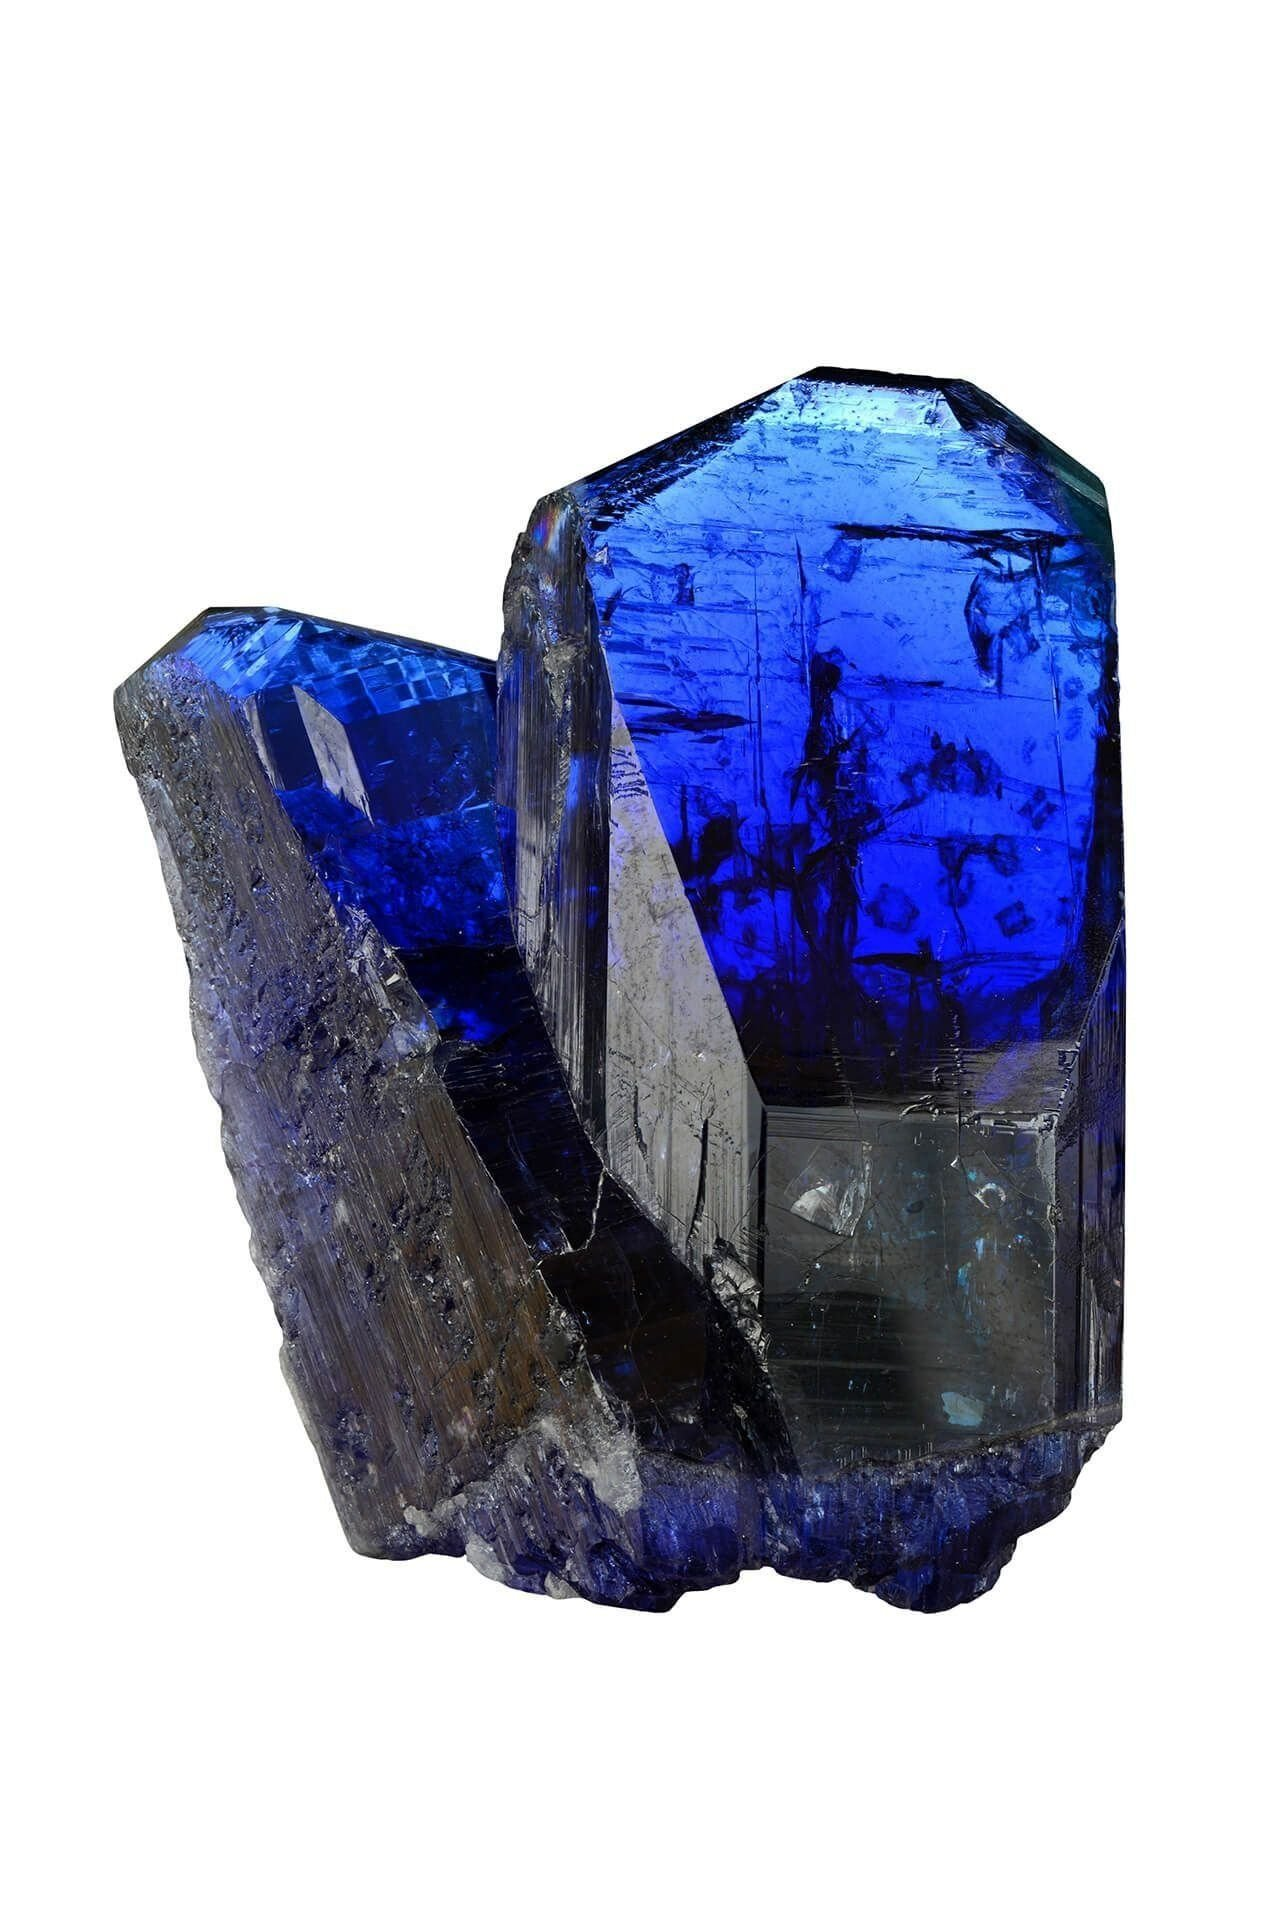 Tanzanite, this stone which was unknown just a few years ago, has become a star of jewelry